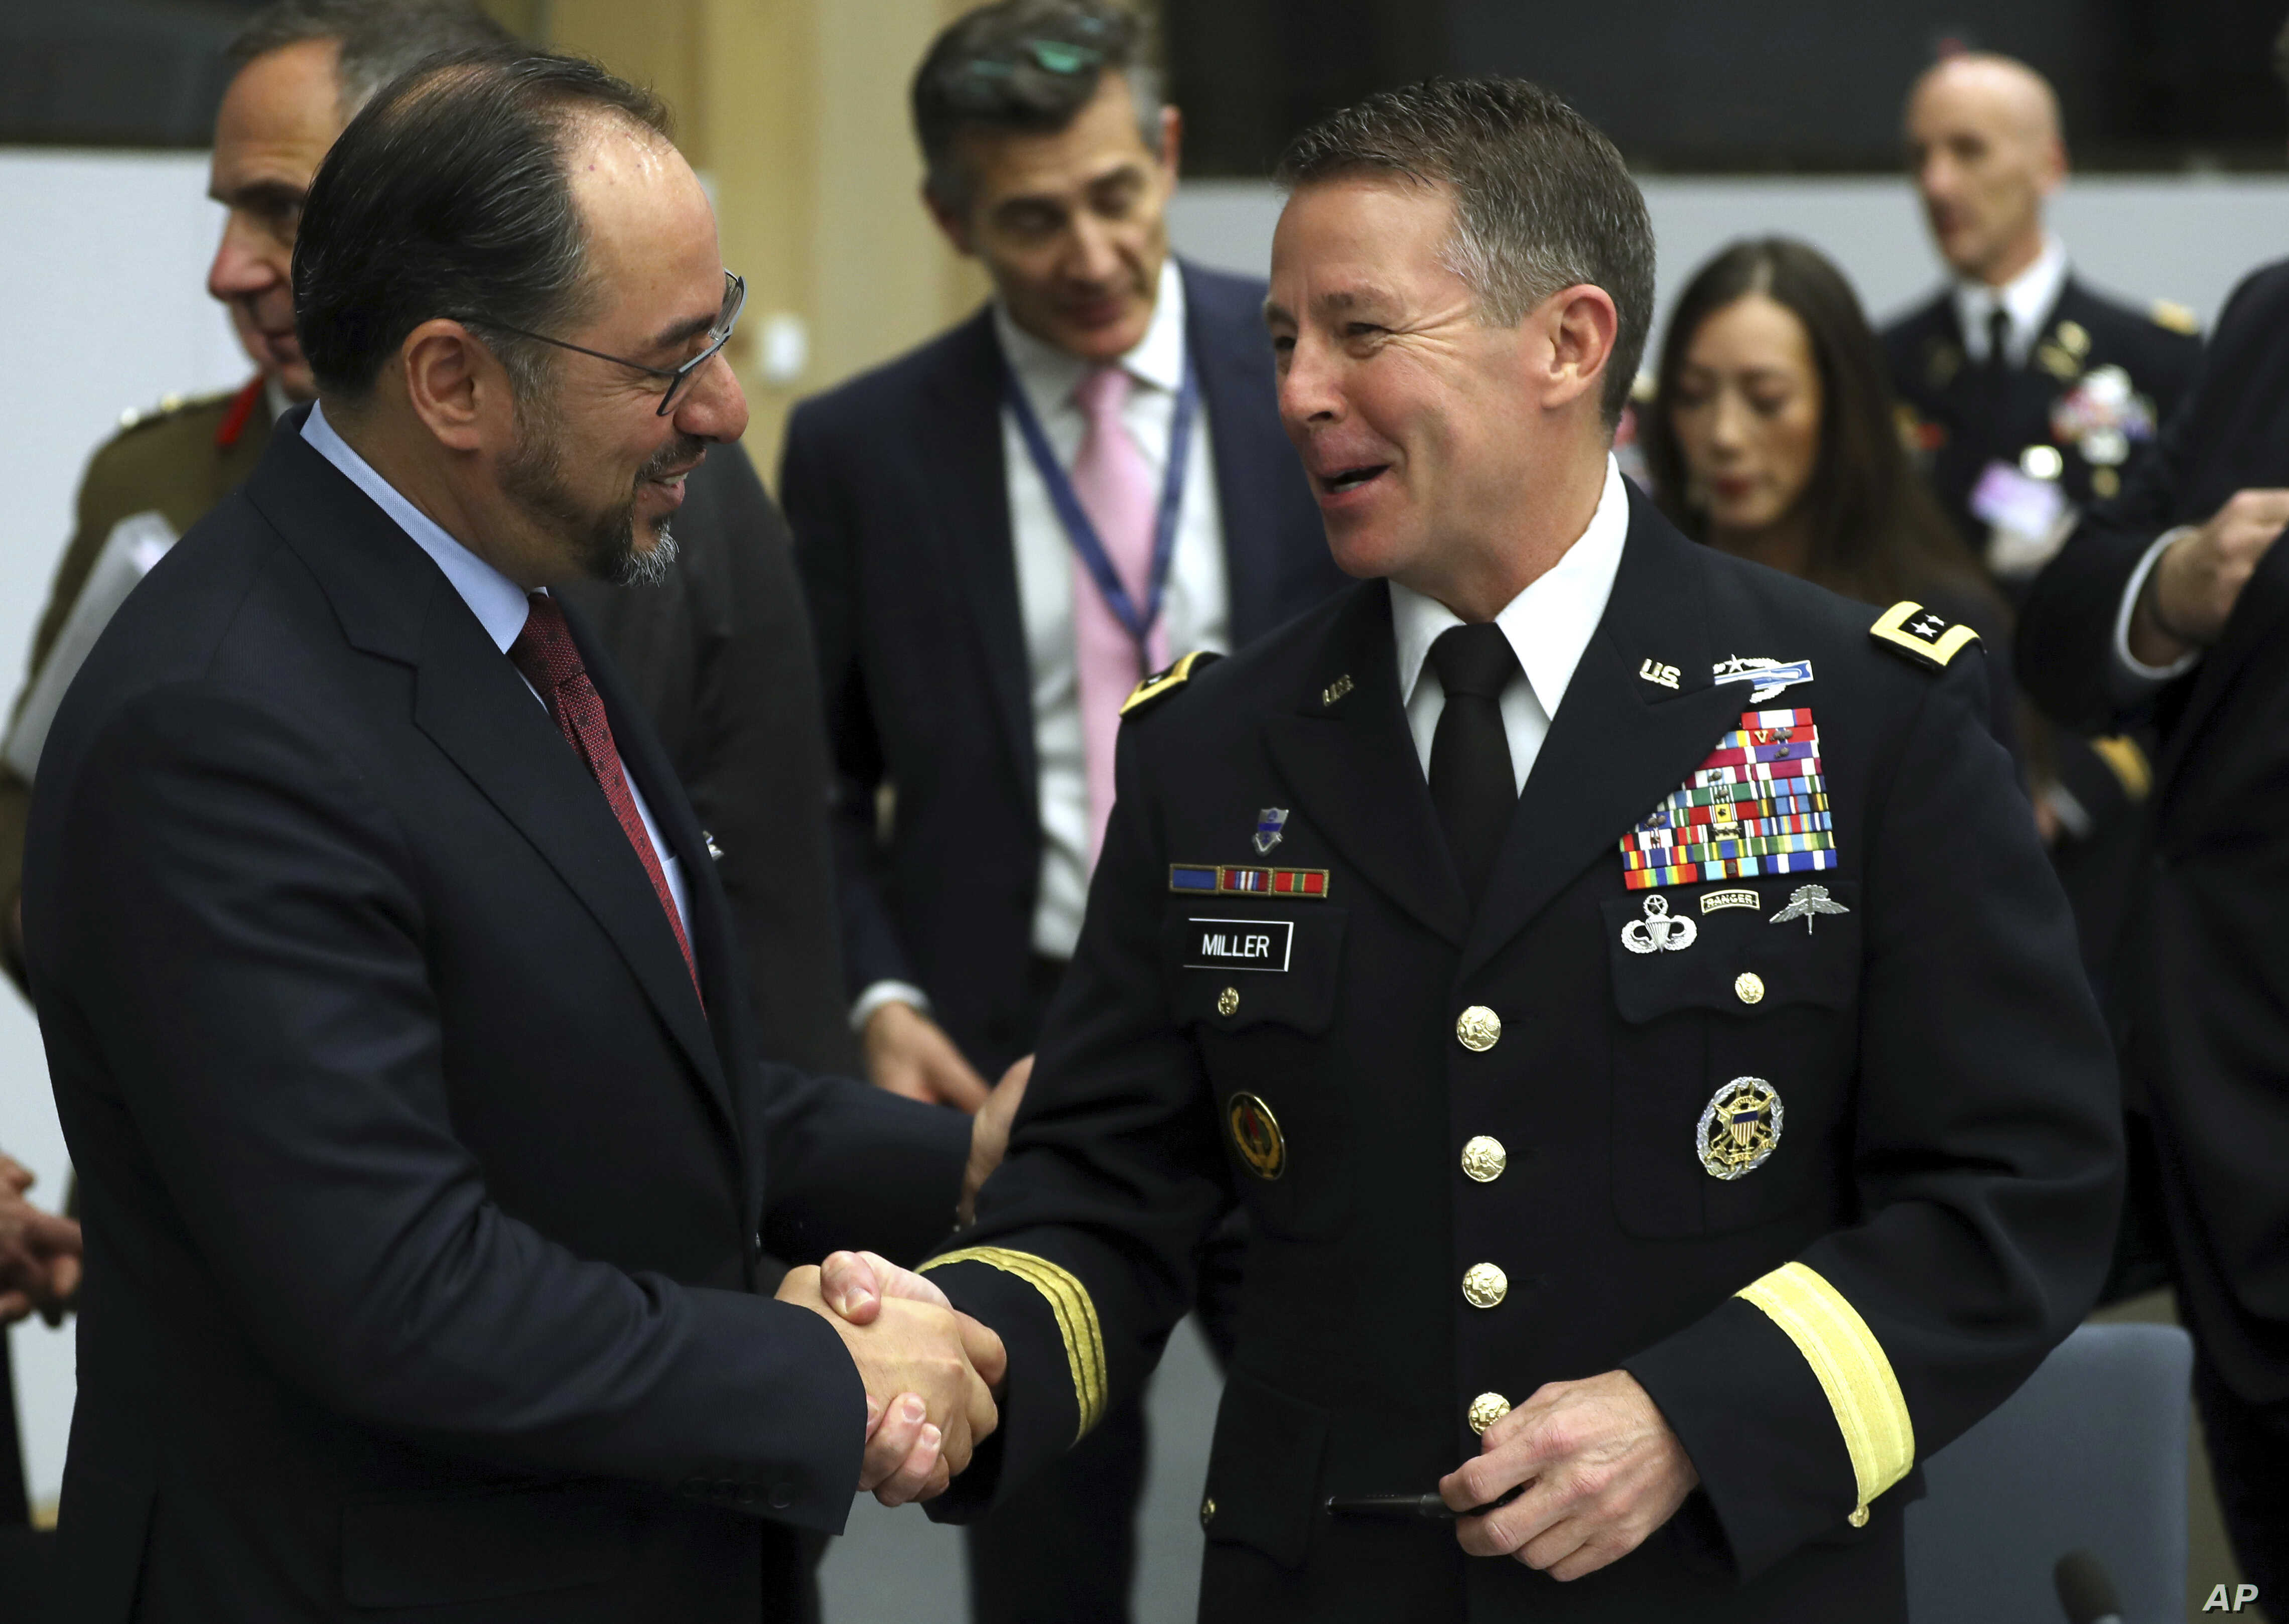 Resolute Support Mission Commander, U.S. Army General Austin Scott Miller, right, shakes hands with Afghanistan's Foreign Minister Salahuddin Rabbani during a meeting of the North Atlantic Council and Resolute Support at NATO headquarters in Brussels...